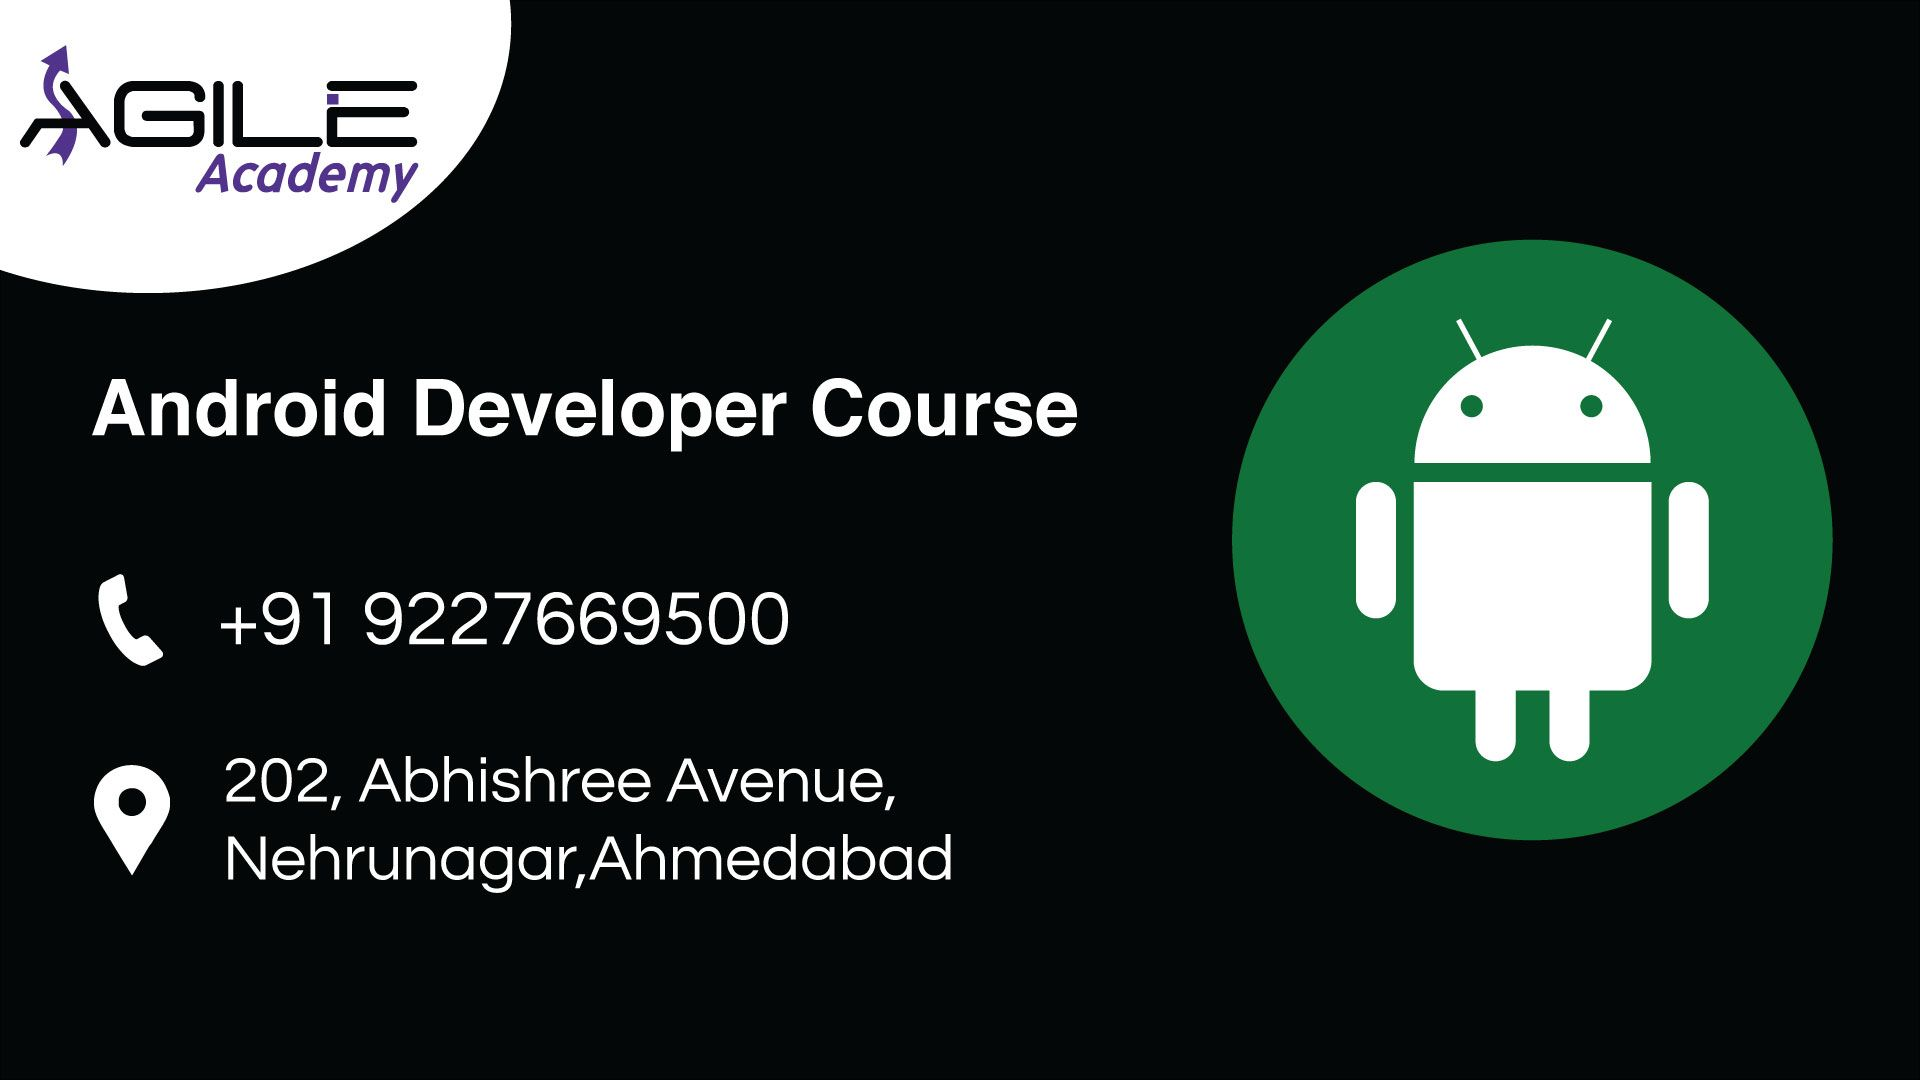 Android #Developer #Course in #Ahmedabad #India #Community